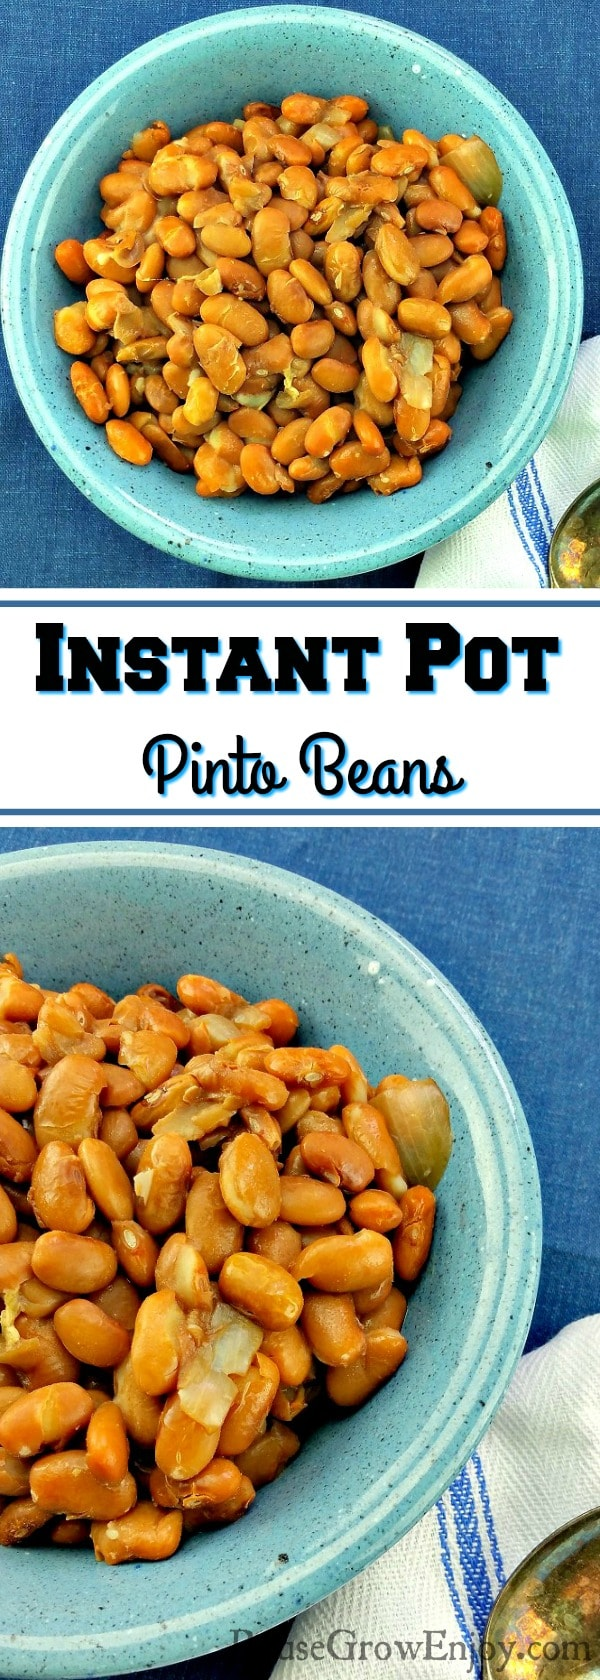 Making beans in the Instant Pot is life changing, it really is so much easier! Check out this best ever Instant Pot Pinto Beans Recipe!